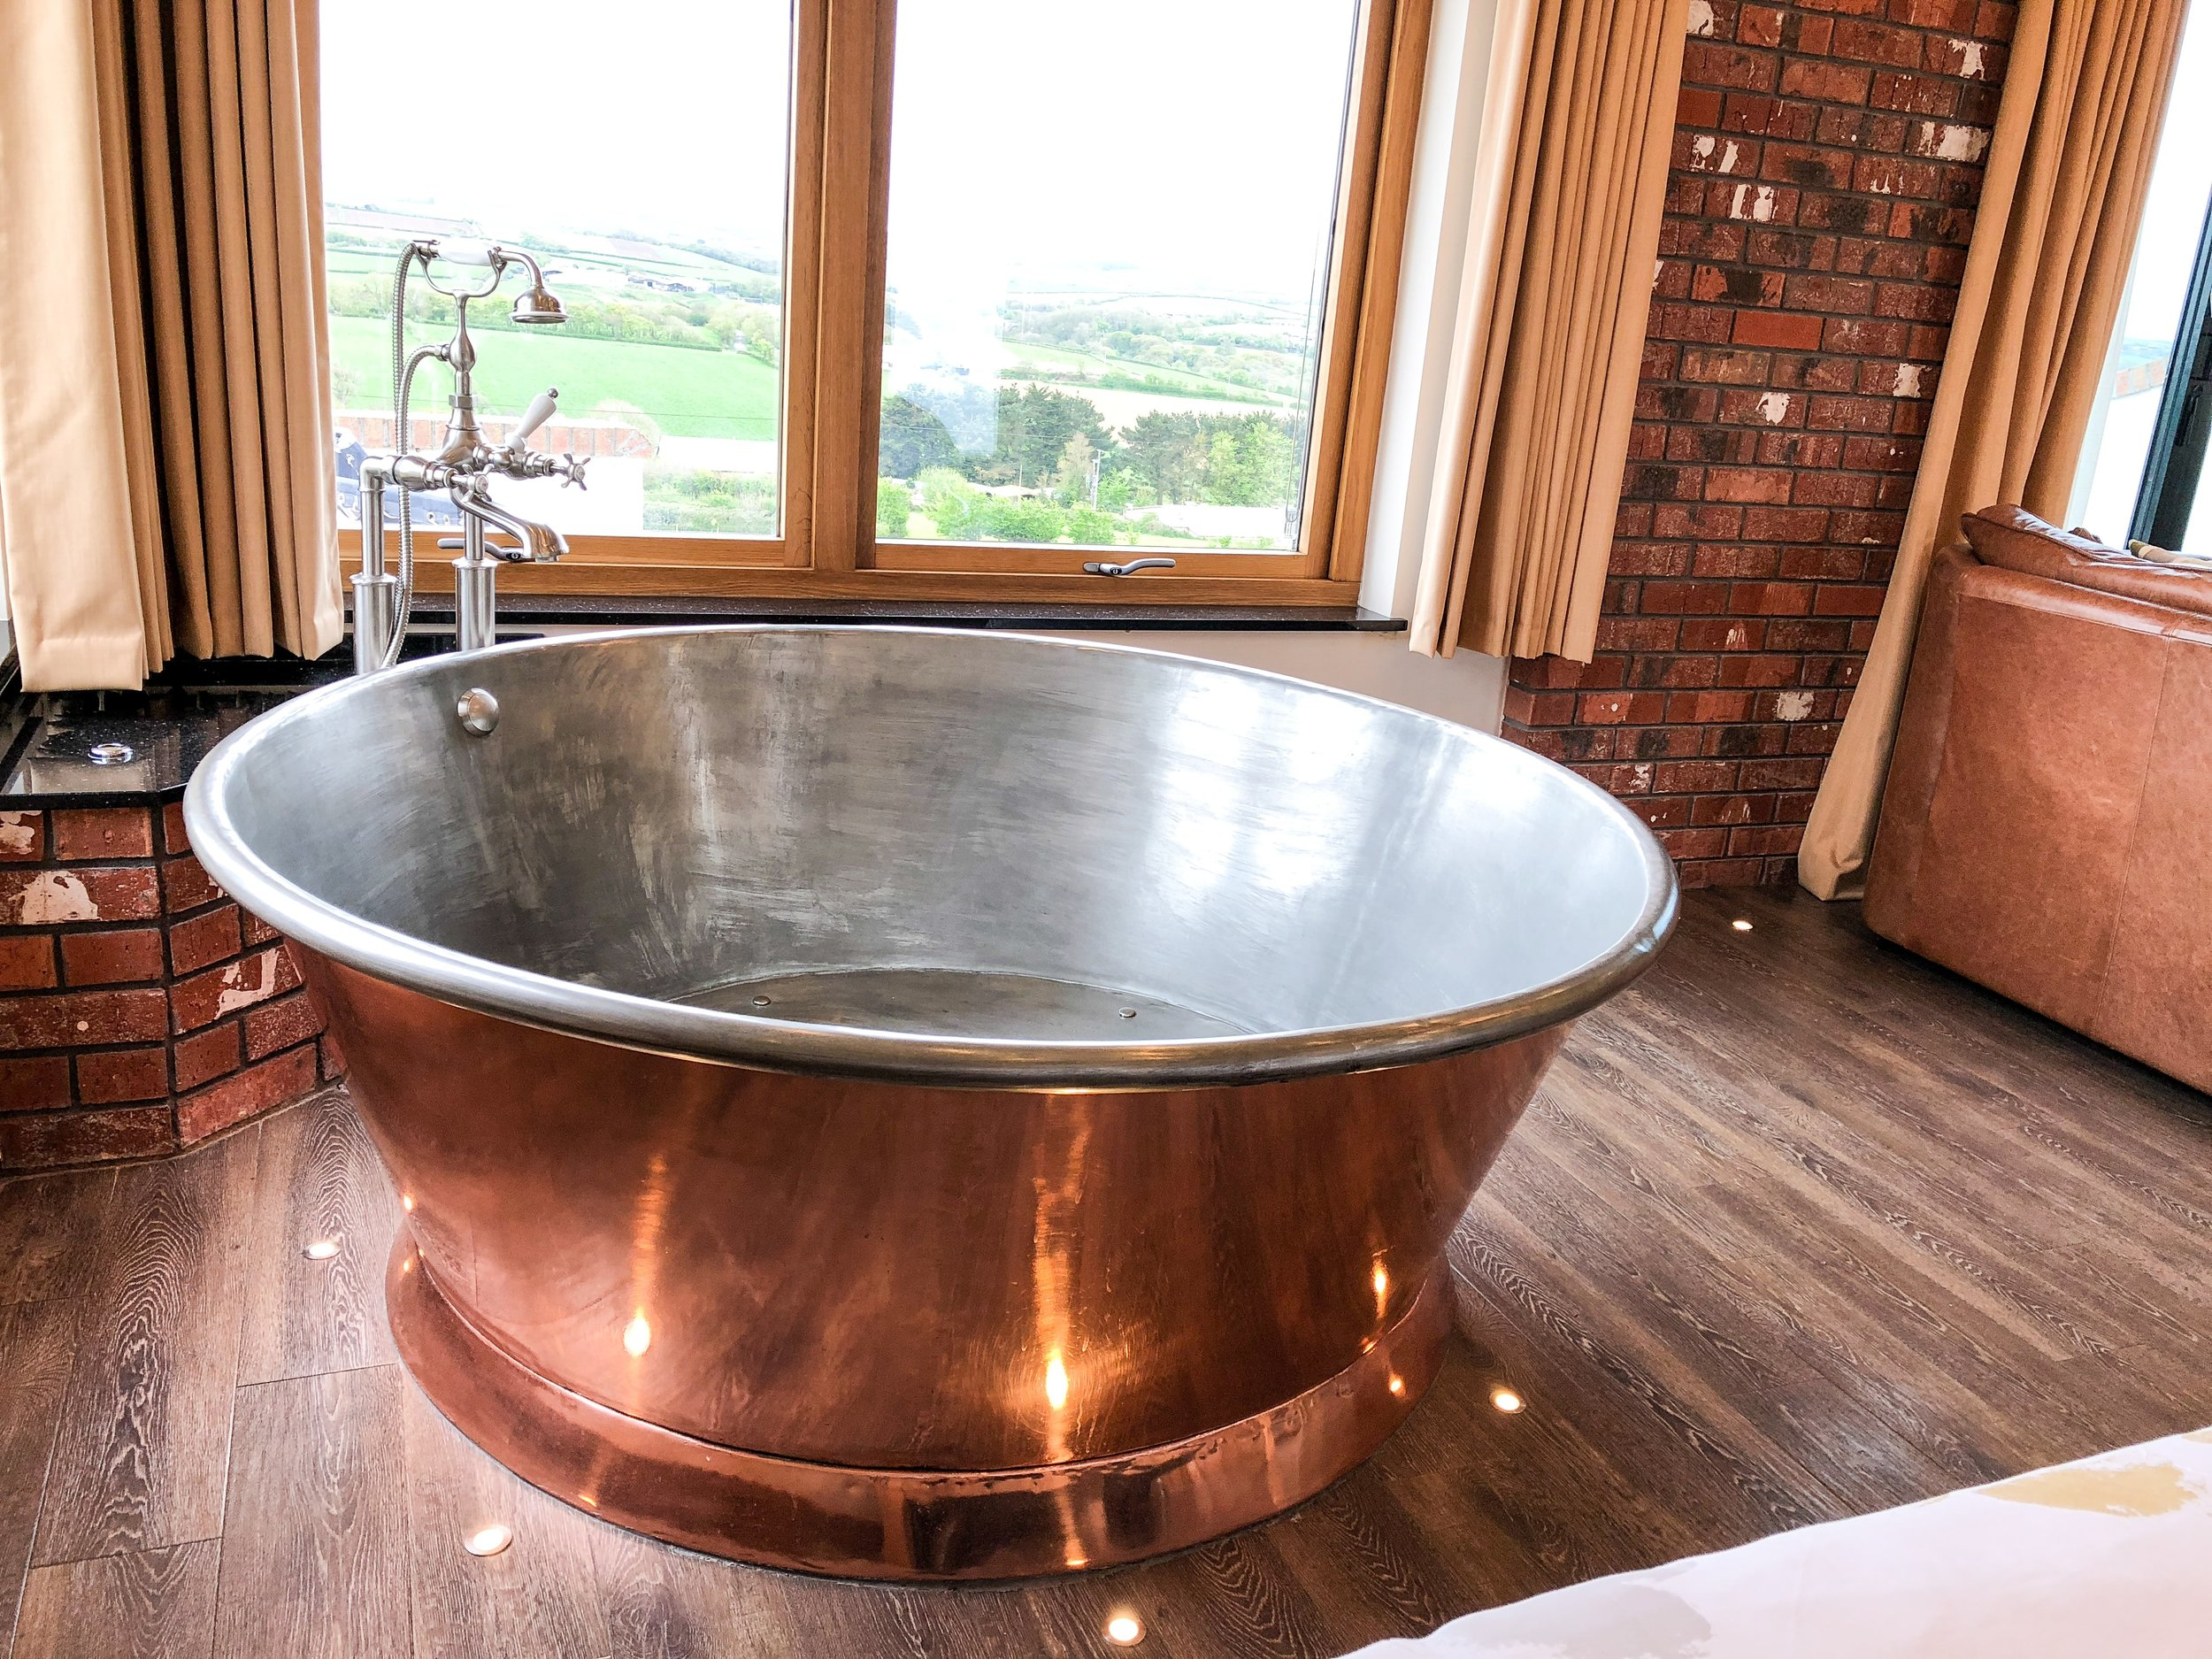 Large round copper spa bath, perfect for two!